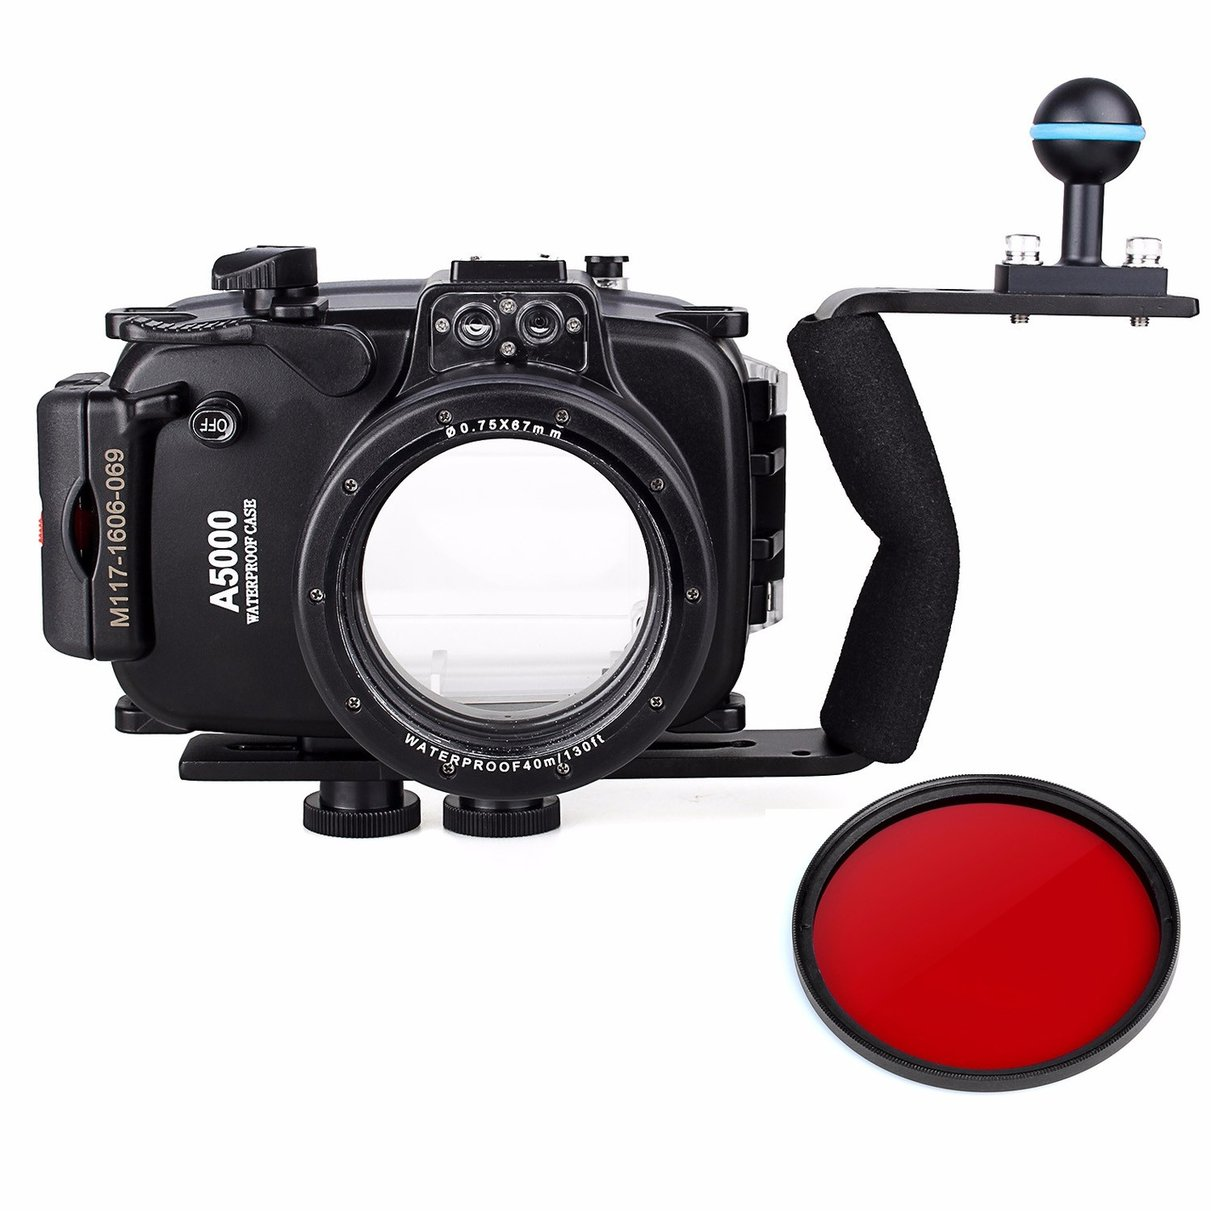 40m 130ft Waterproof Underwater Diving Camera Case For Sony A5000 16-50mm + Aluminium Diving handle + 67mm Red Filter